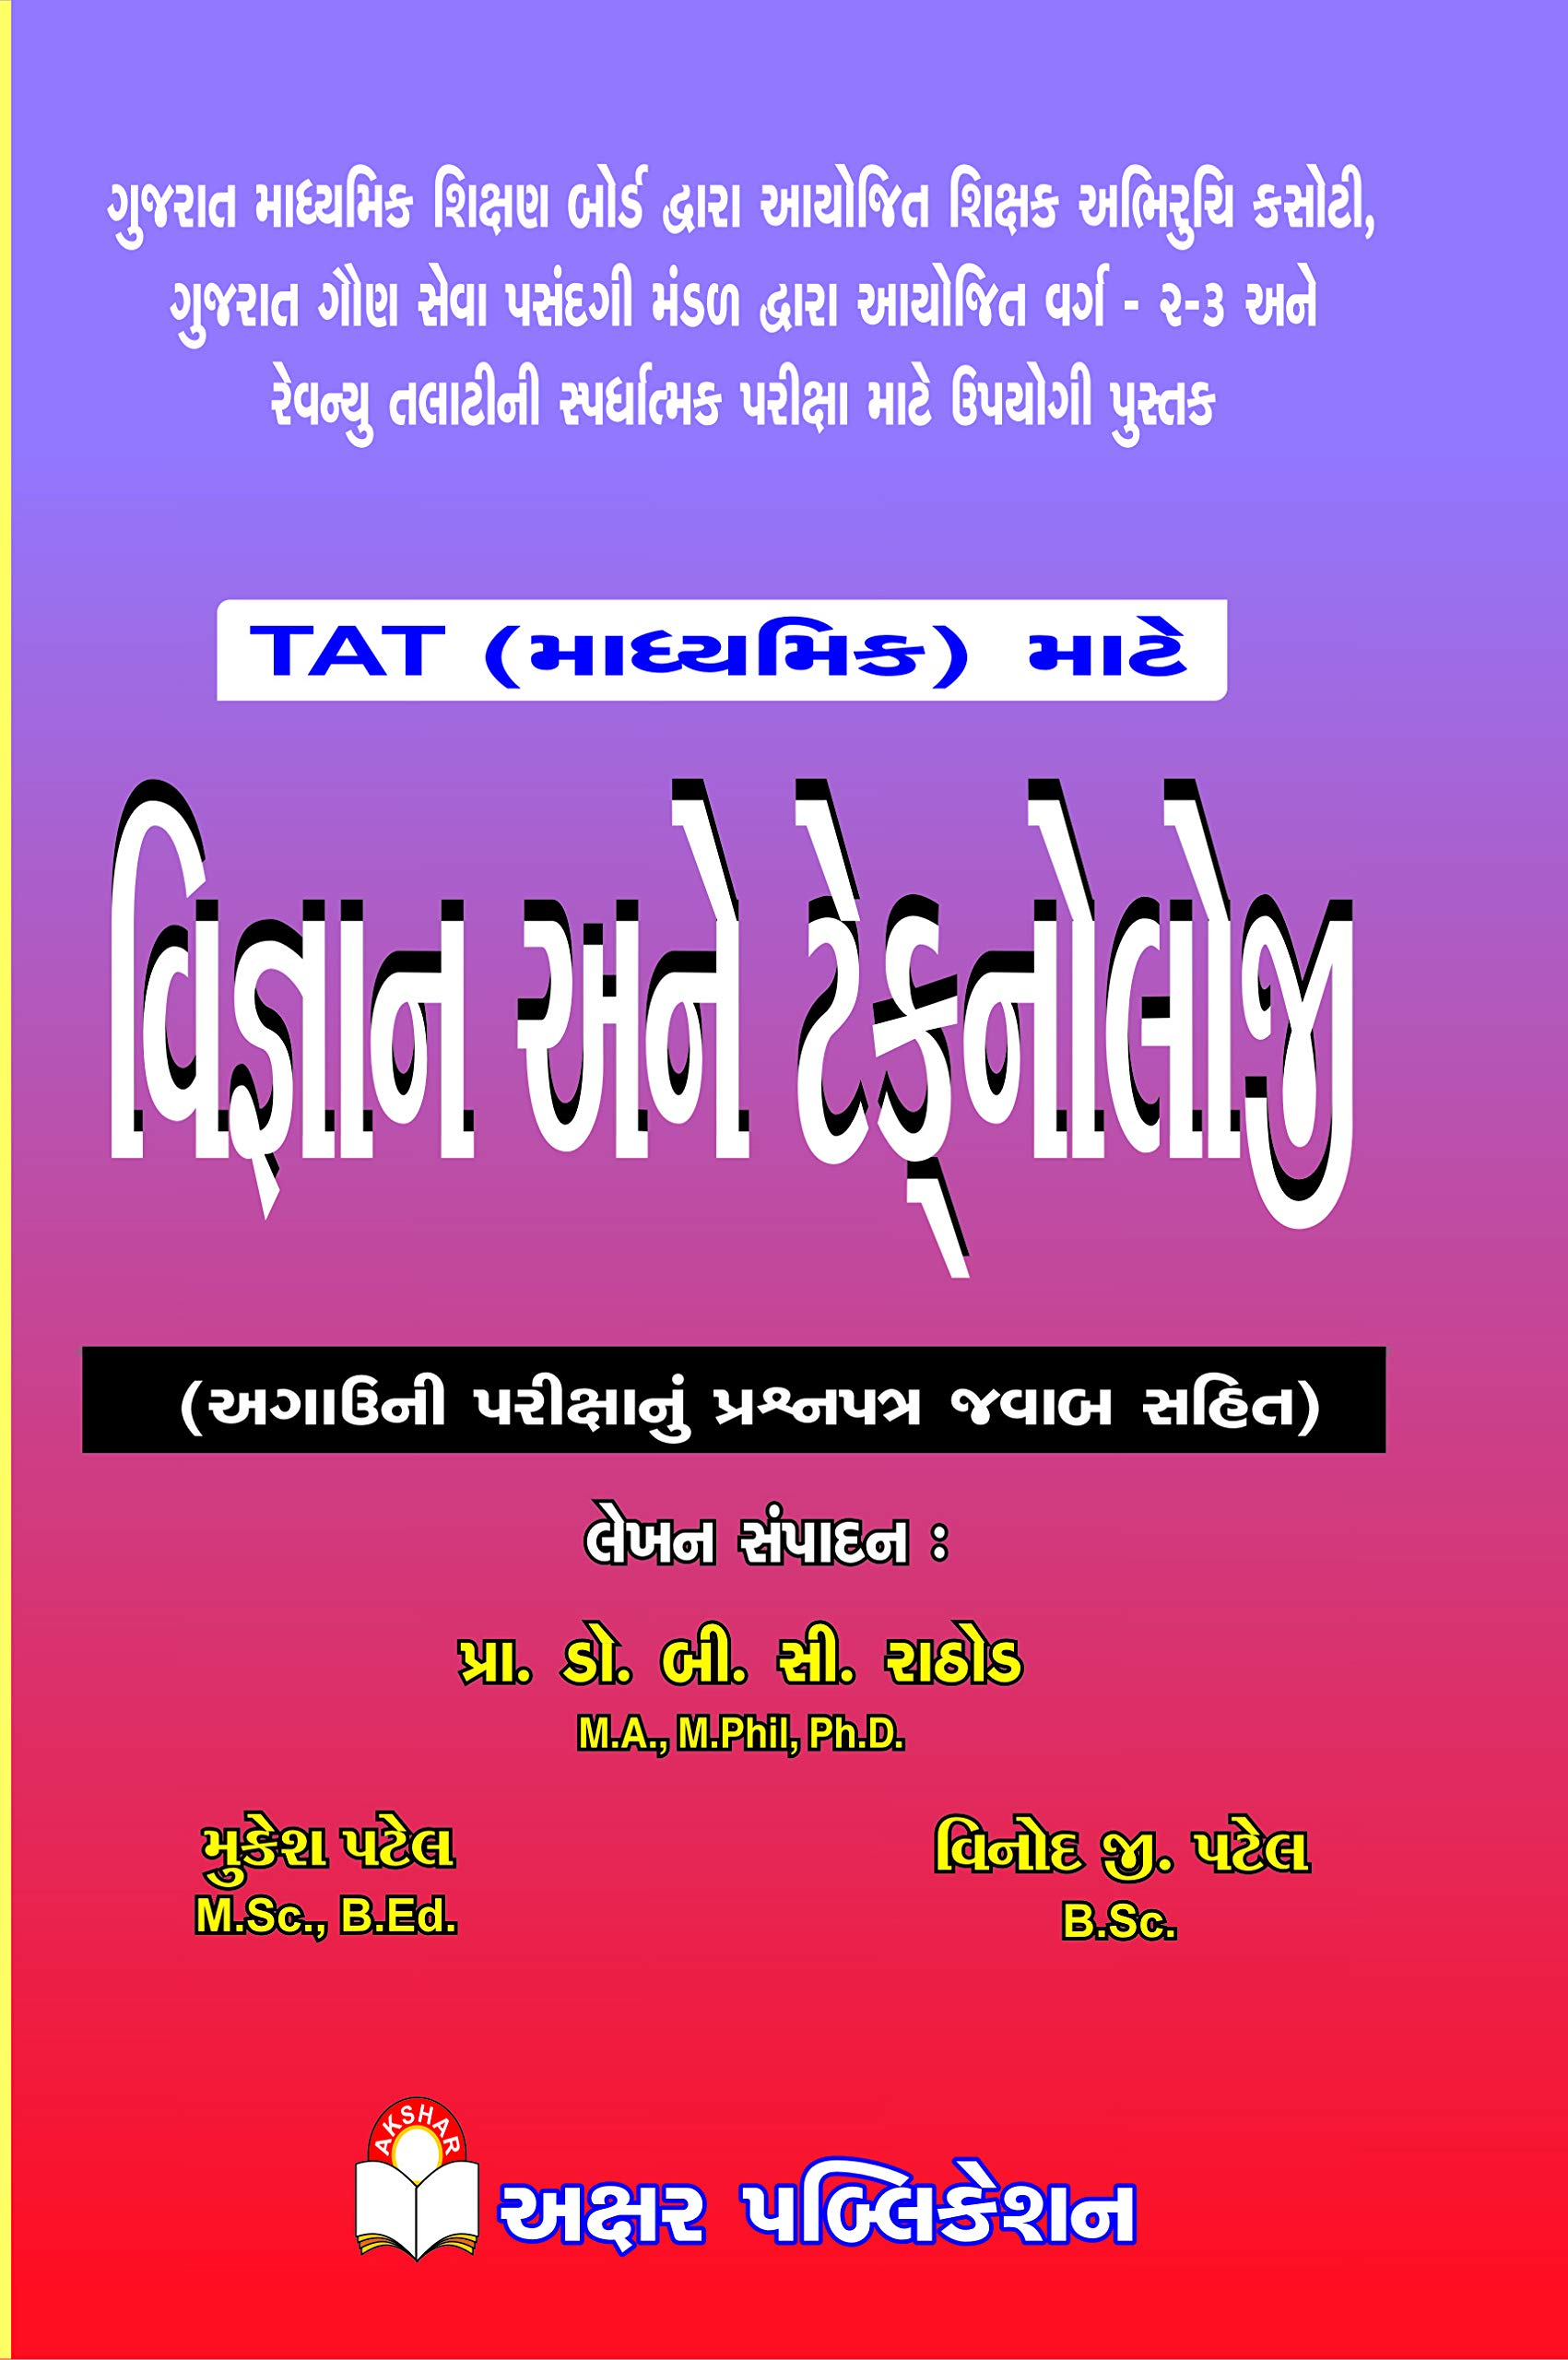 Axar Publication Books PDF Free Download | Akshar Publication Science and Technology Book